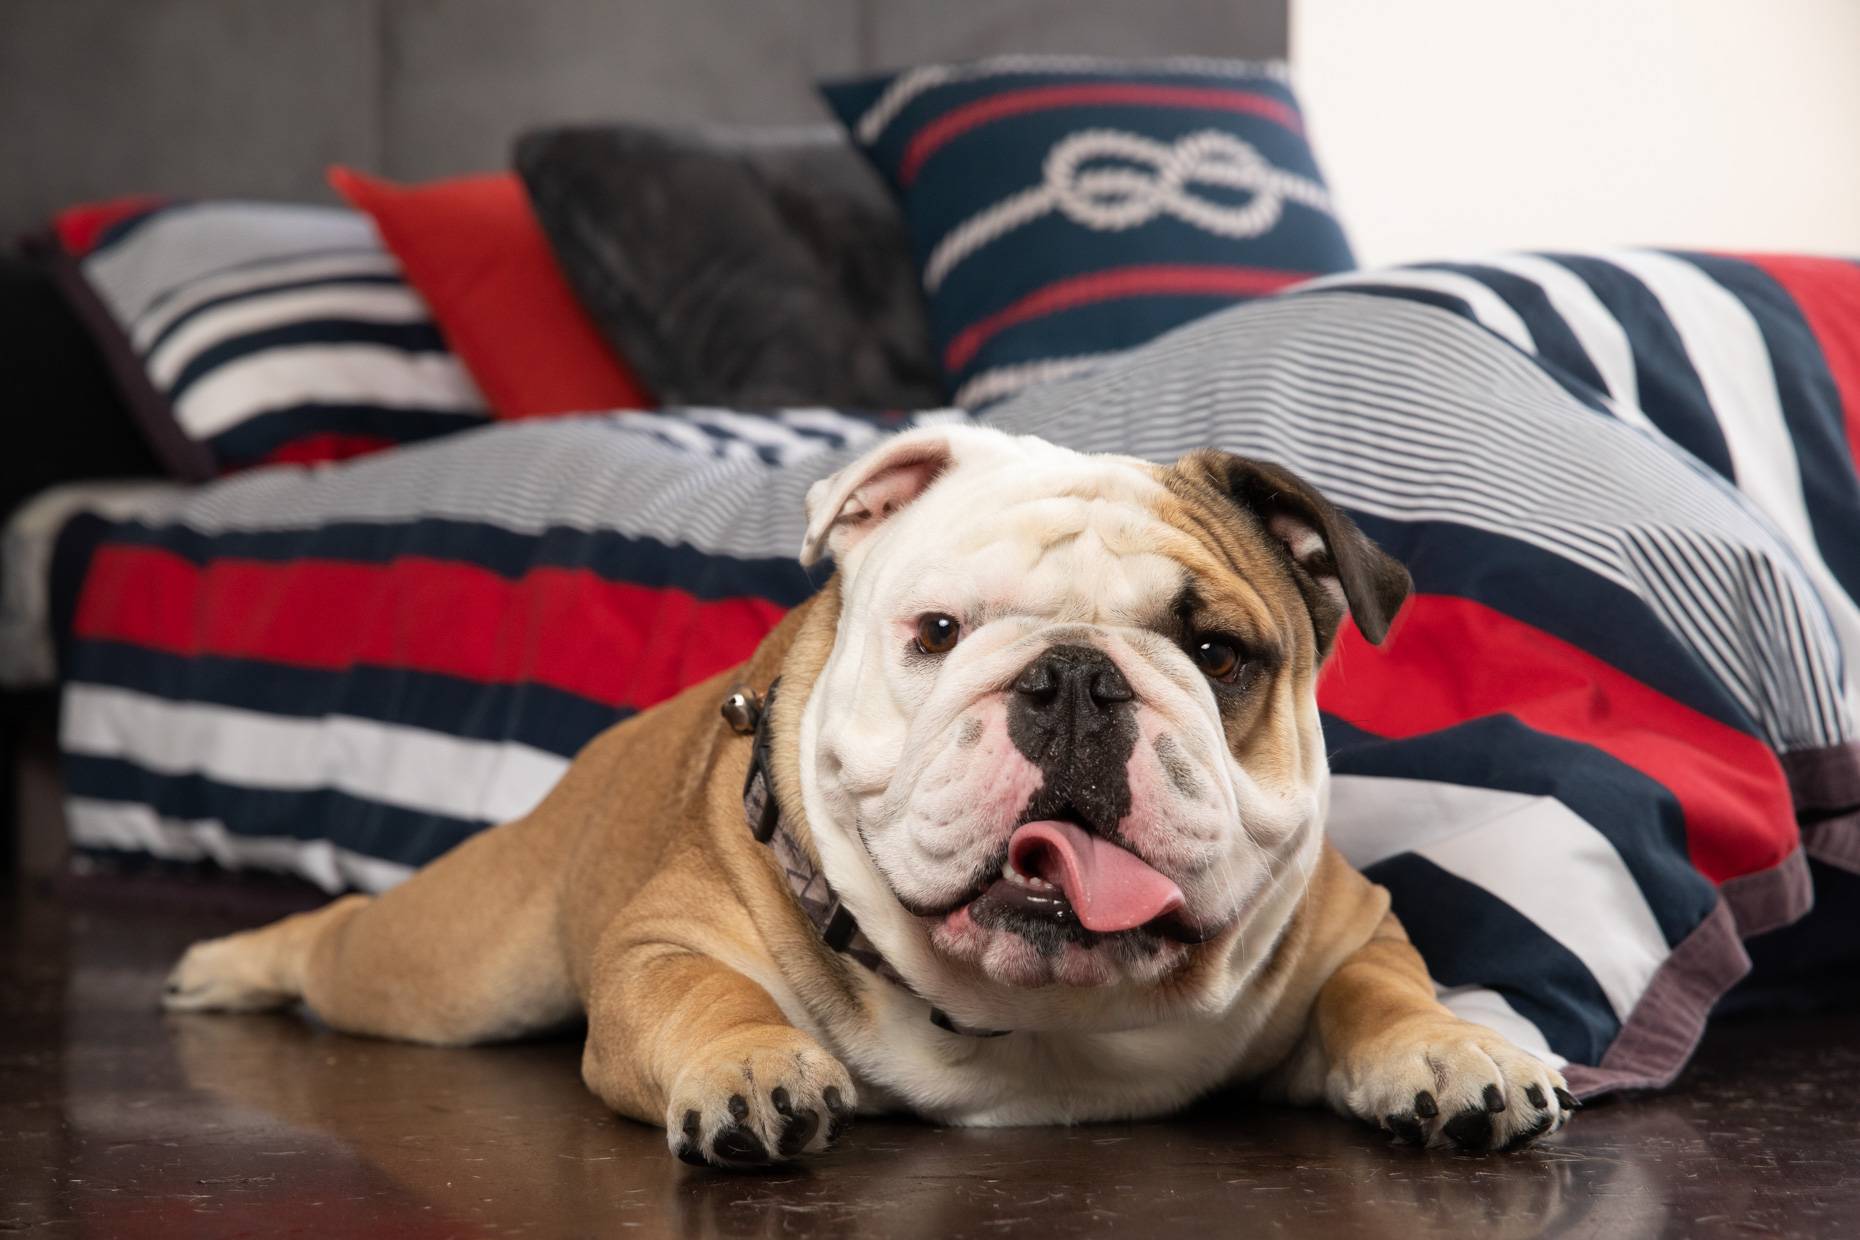 Commercial Dog Photography | Bull Dog Next to Bed by Mark Rogers